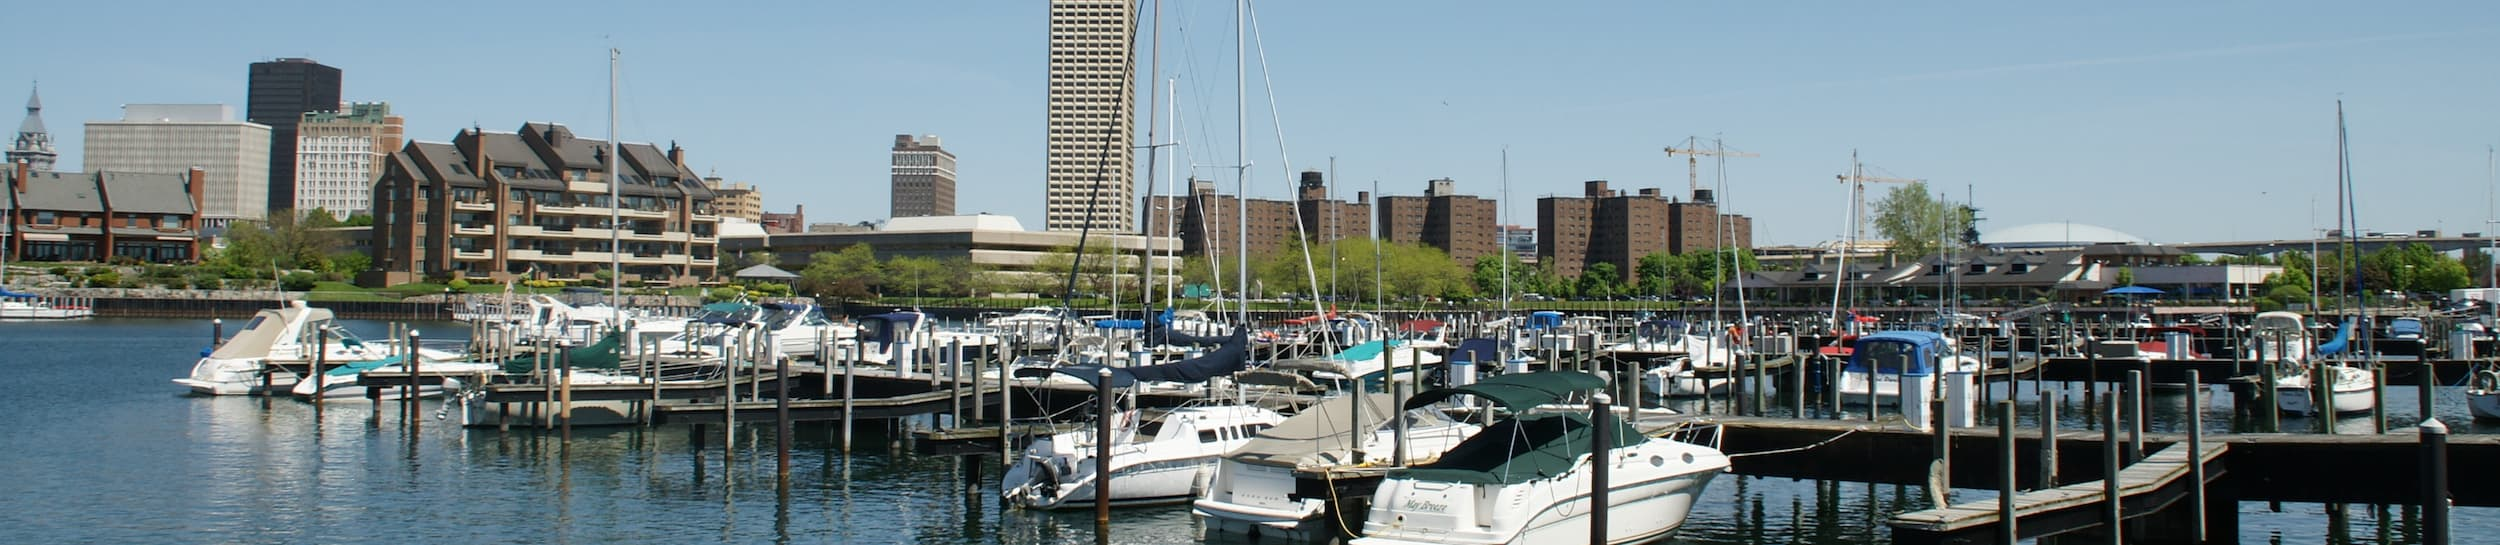 Pictured: skyline of Buffalo